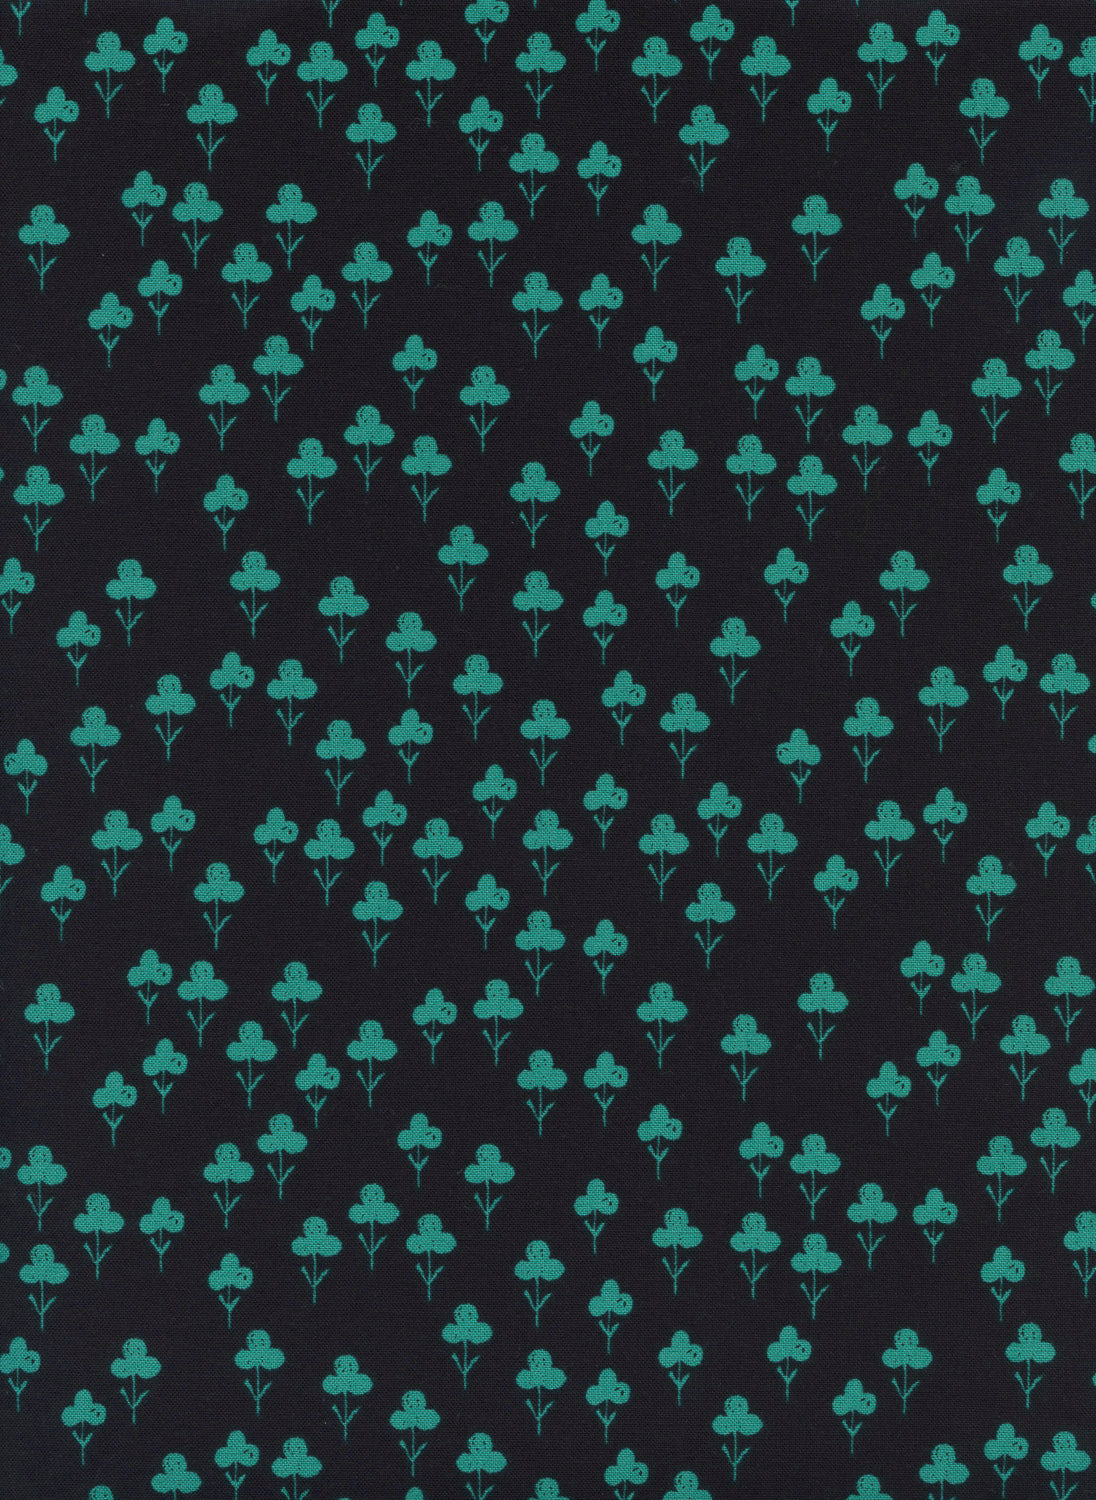 Front Yard - Clovers Teal